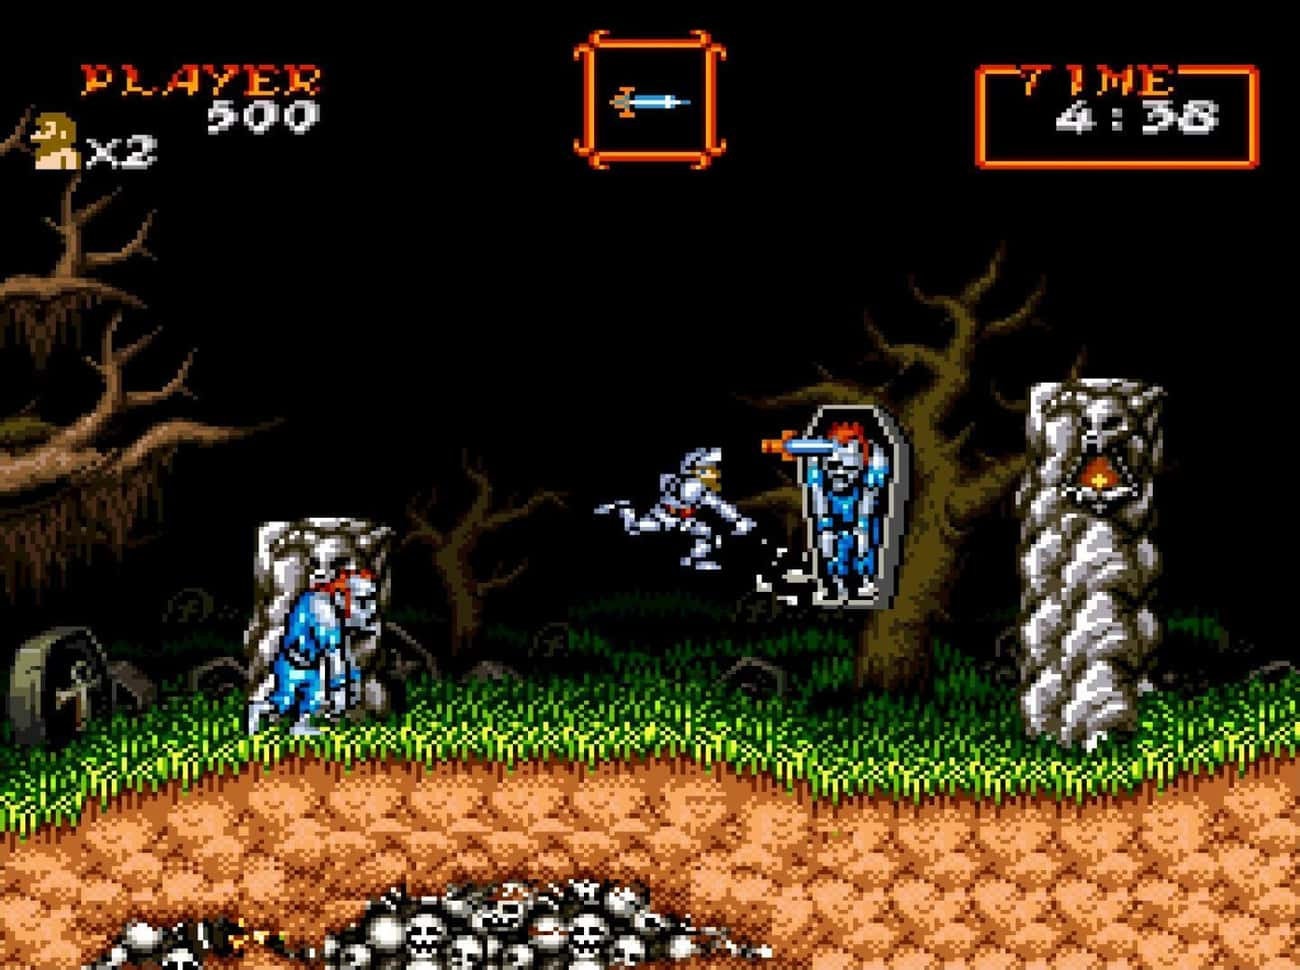 Super Ghouls'n Ghosts is listed (or ranked) 2 on the list 20 Super Nintendo Games That Are So Hard We're Still Trying To Beat Them